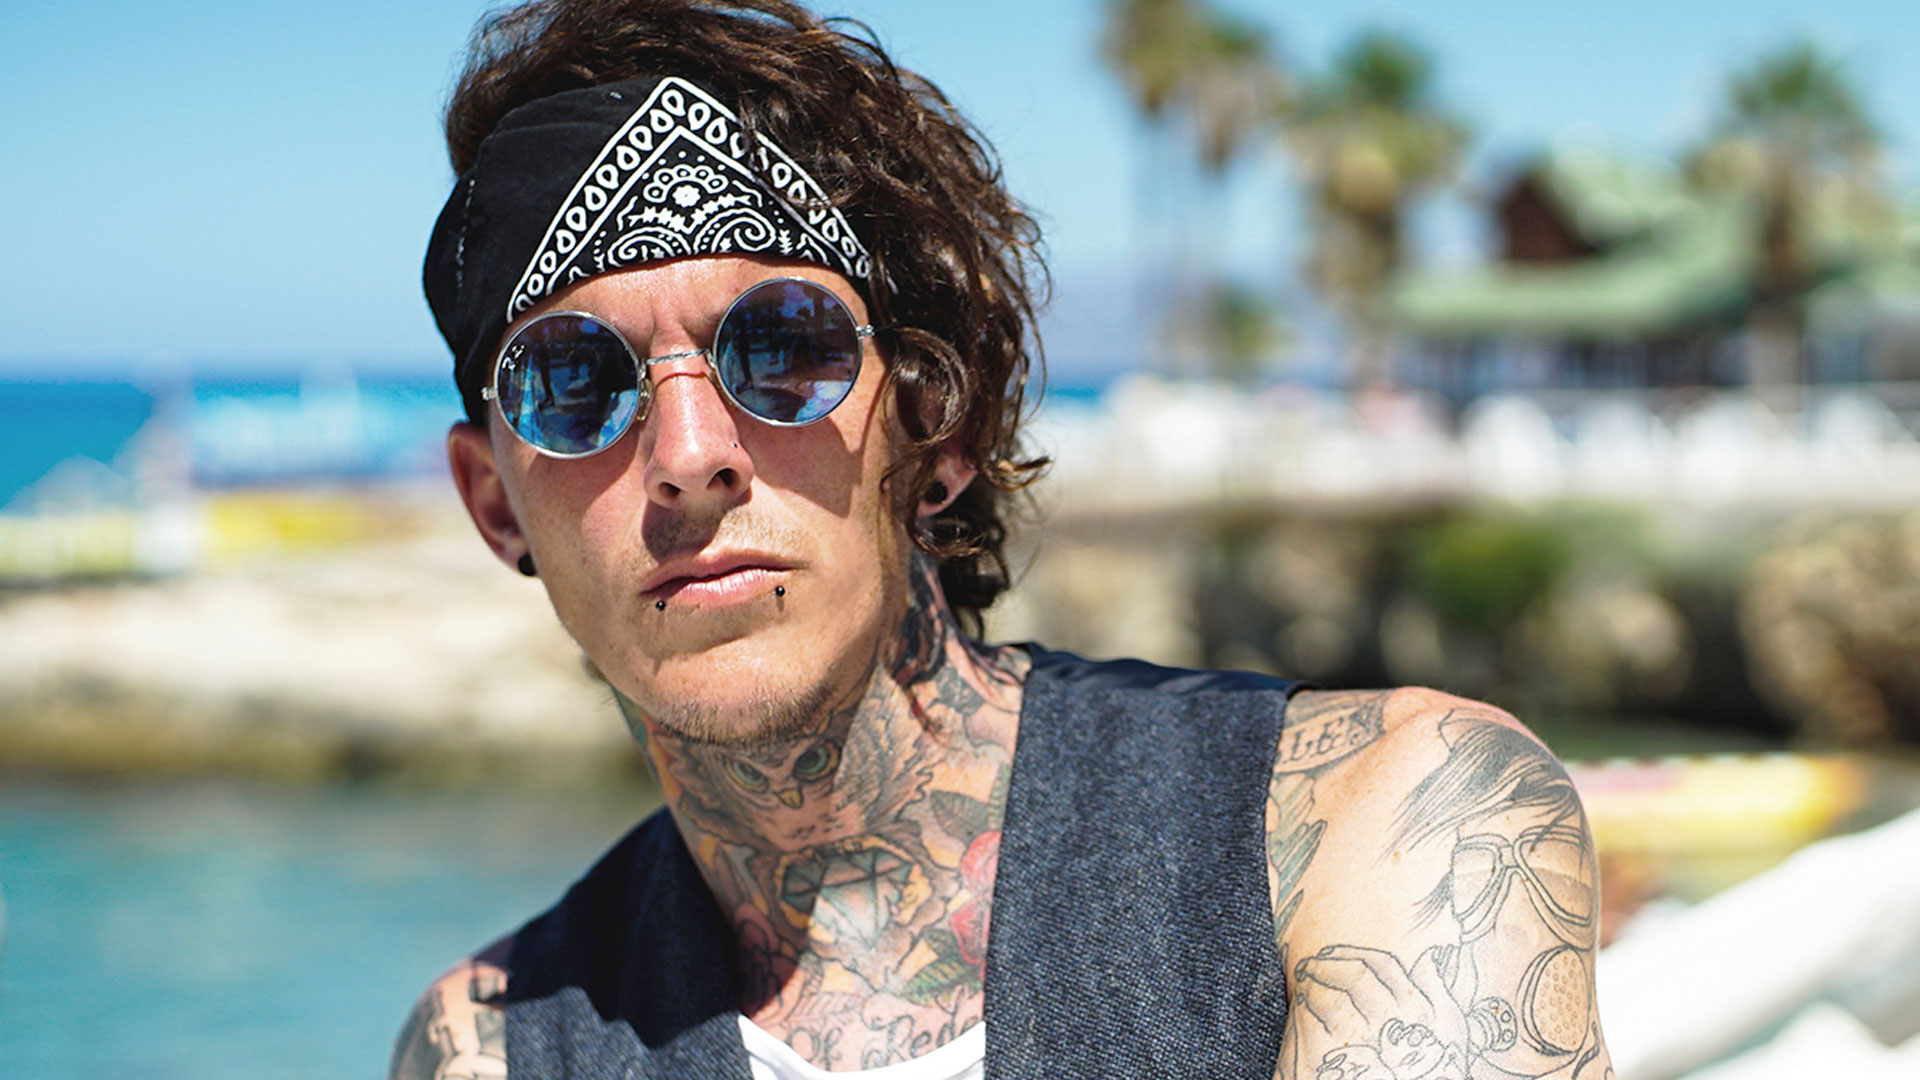 Tattoo Fixers On Holiday - All 4-9183